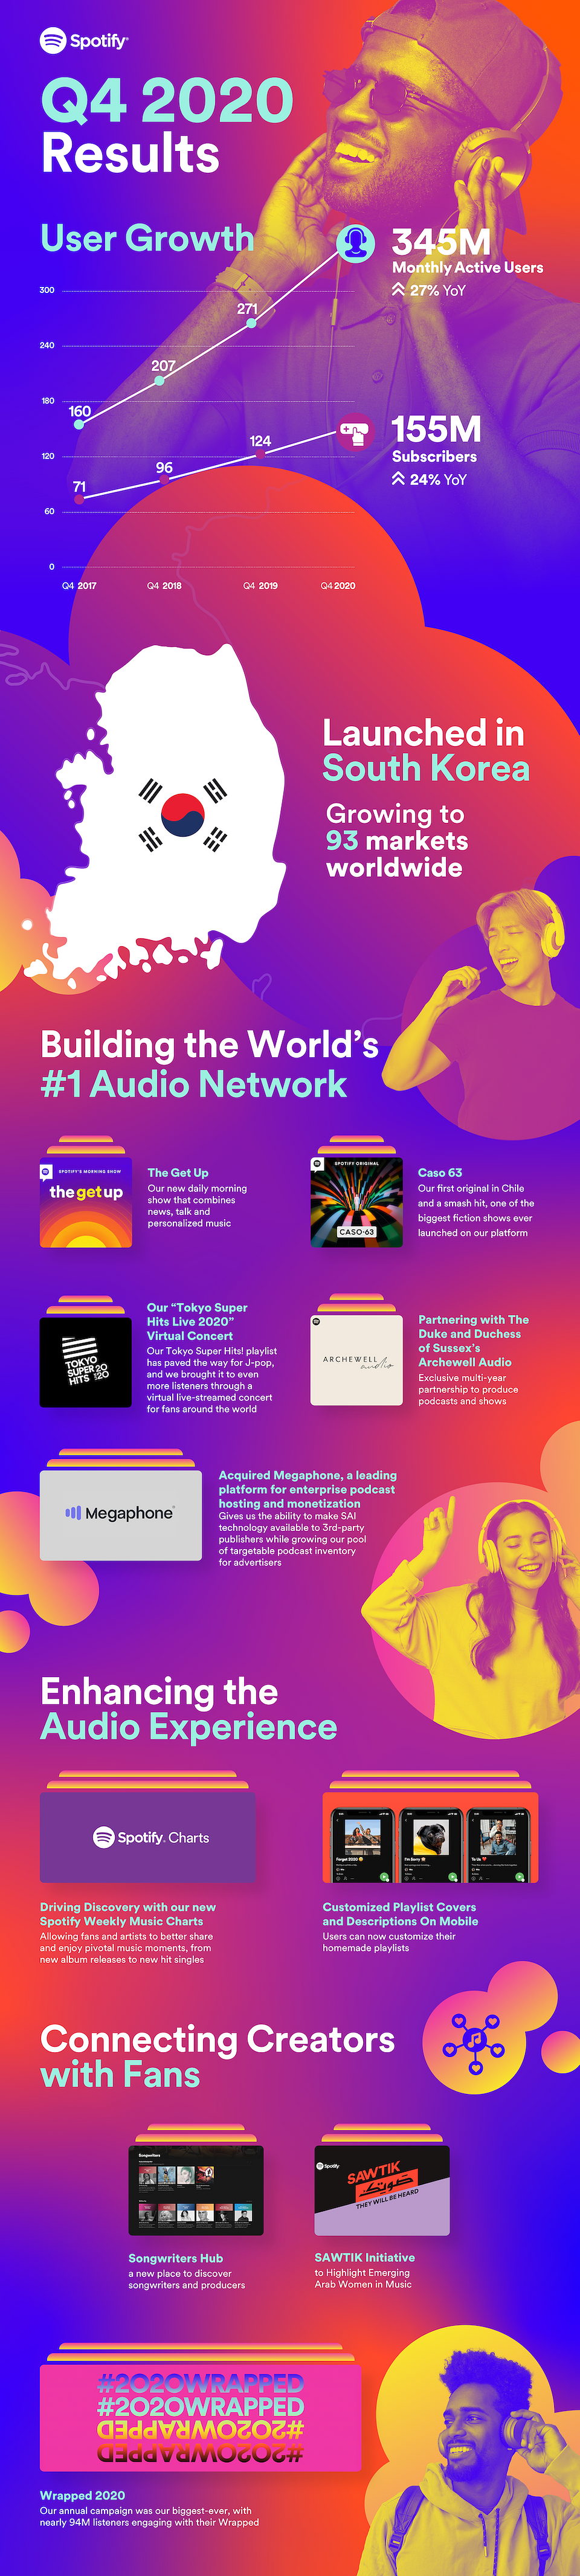 Spotify-Q4-2020-Infographic-2.png